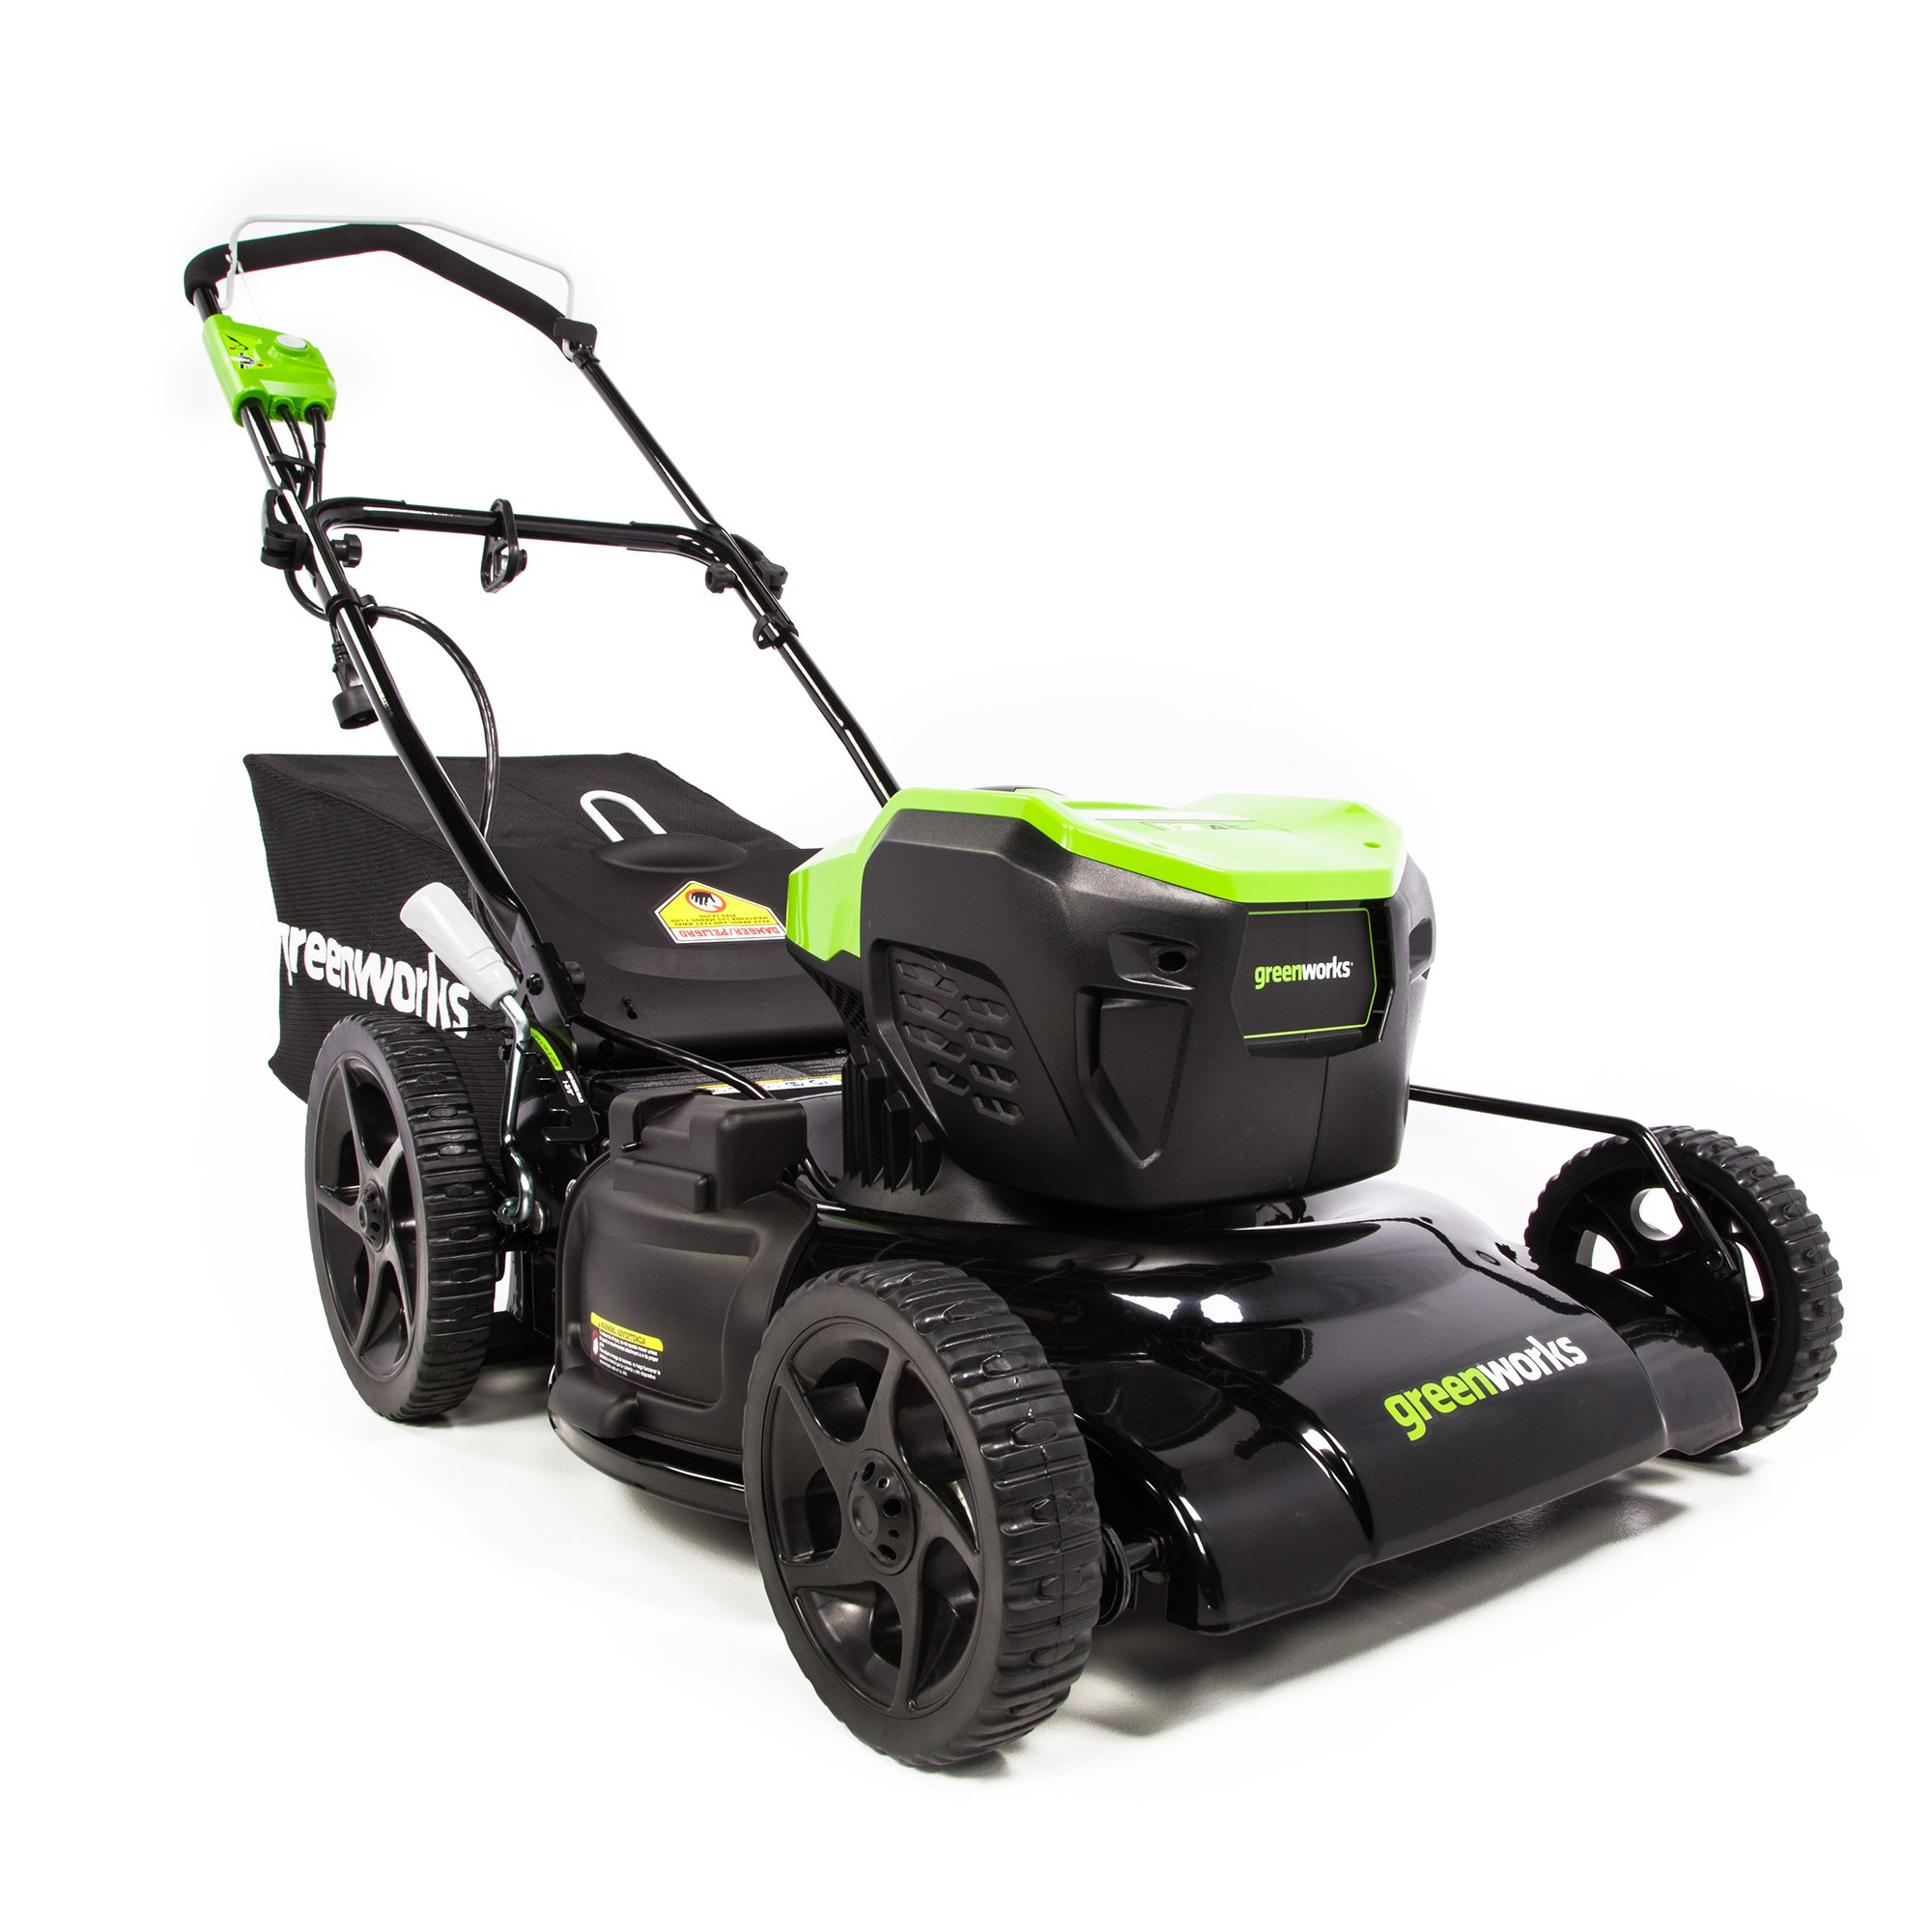 Greenworks 21-Inch 13 Amp Corded Electric Lawn Mower MO13B00 by Greenworks